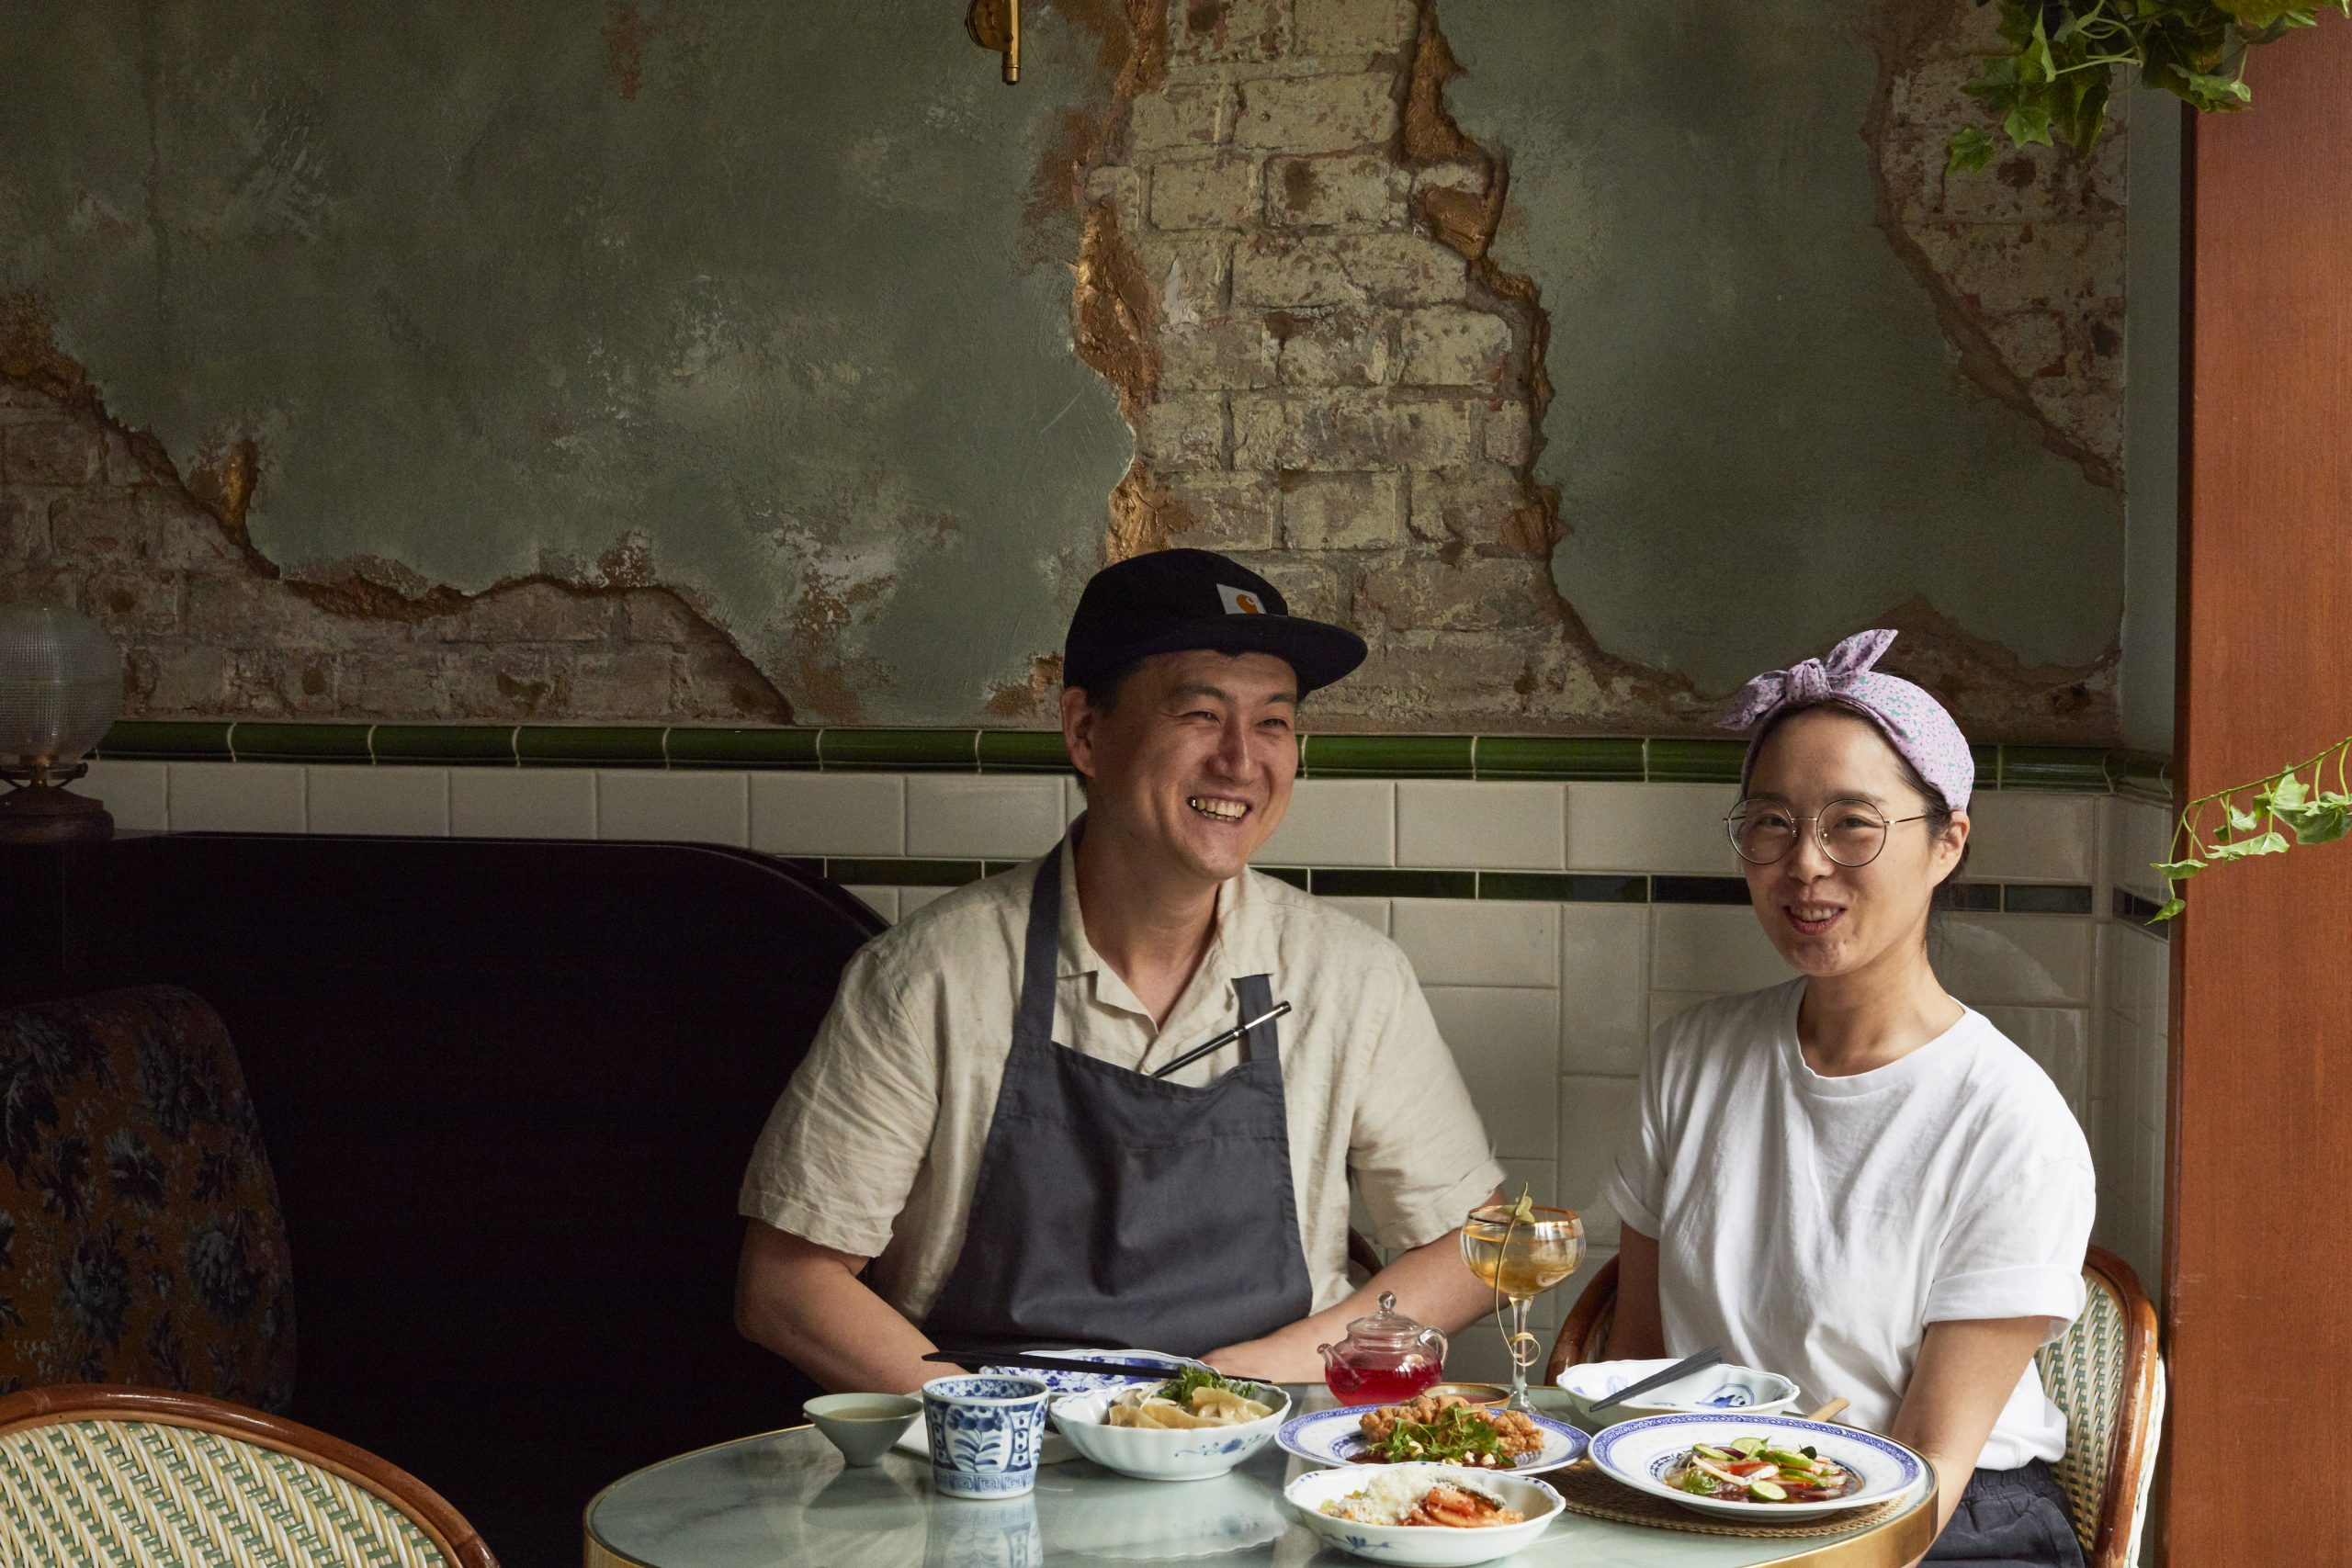 Chefs Joo Won (left) and Sujin (right) sitting down by a table of their Korean dishes.